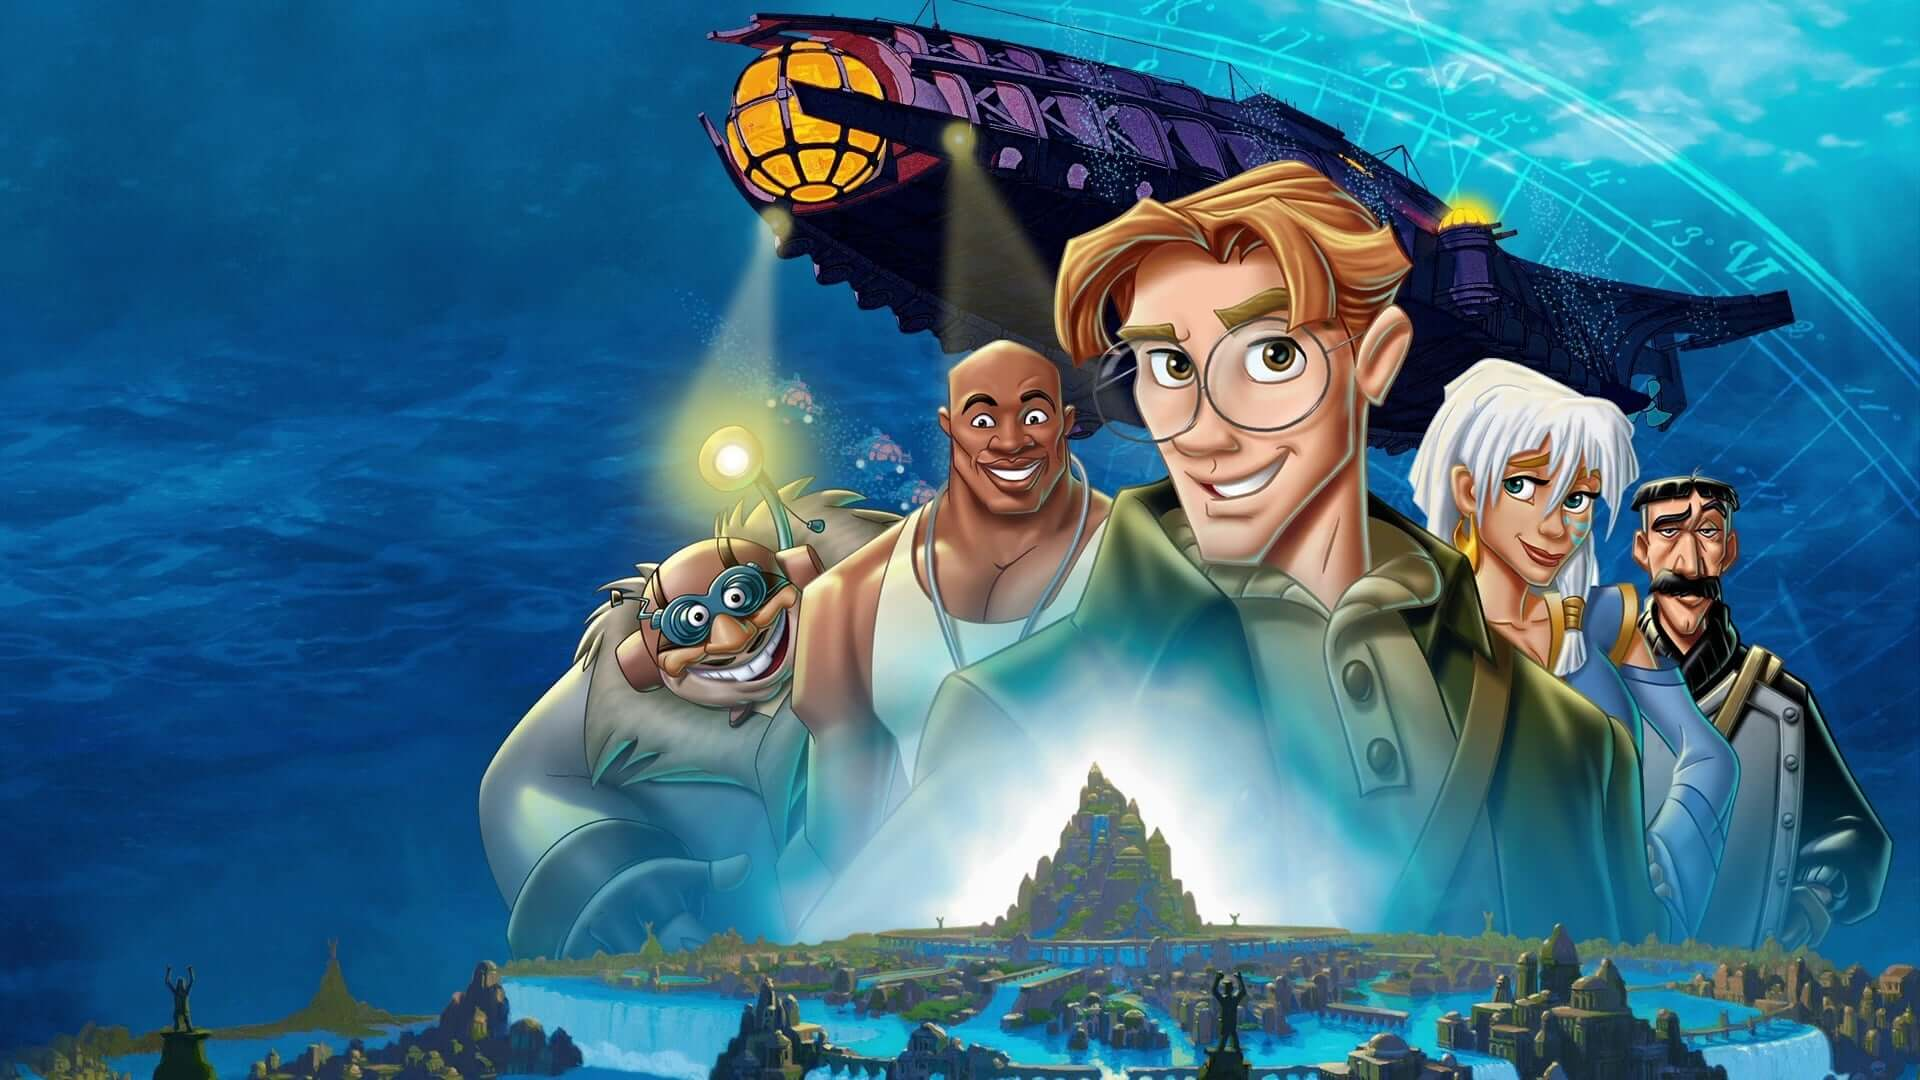 The Disney Atlantis sequel